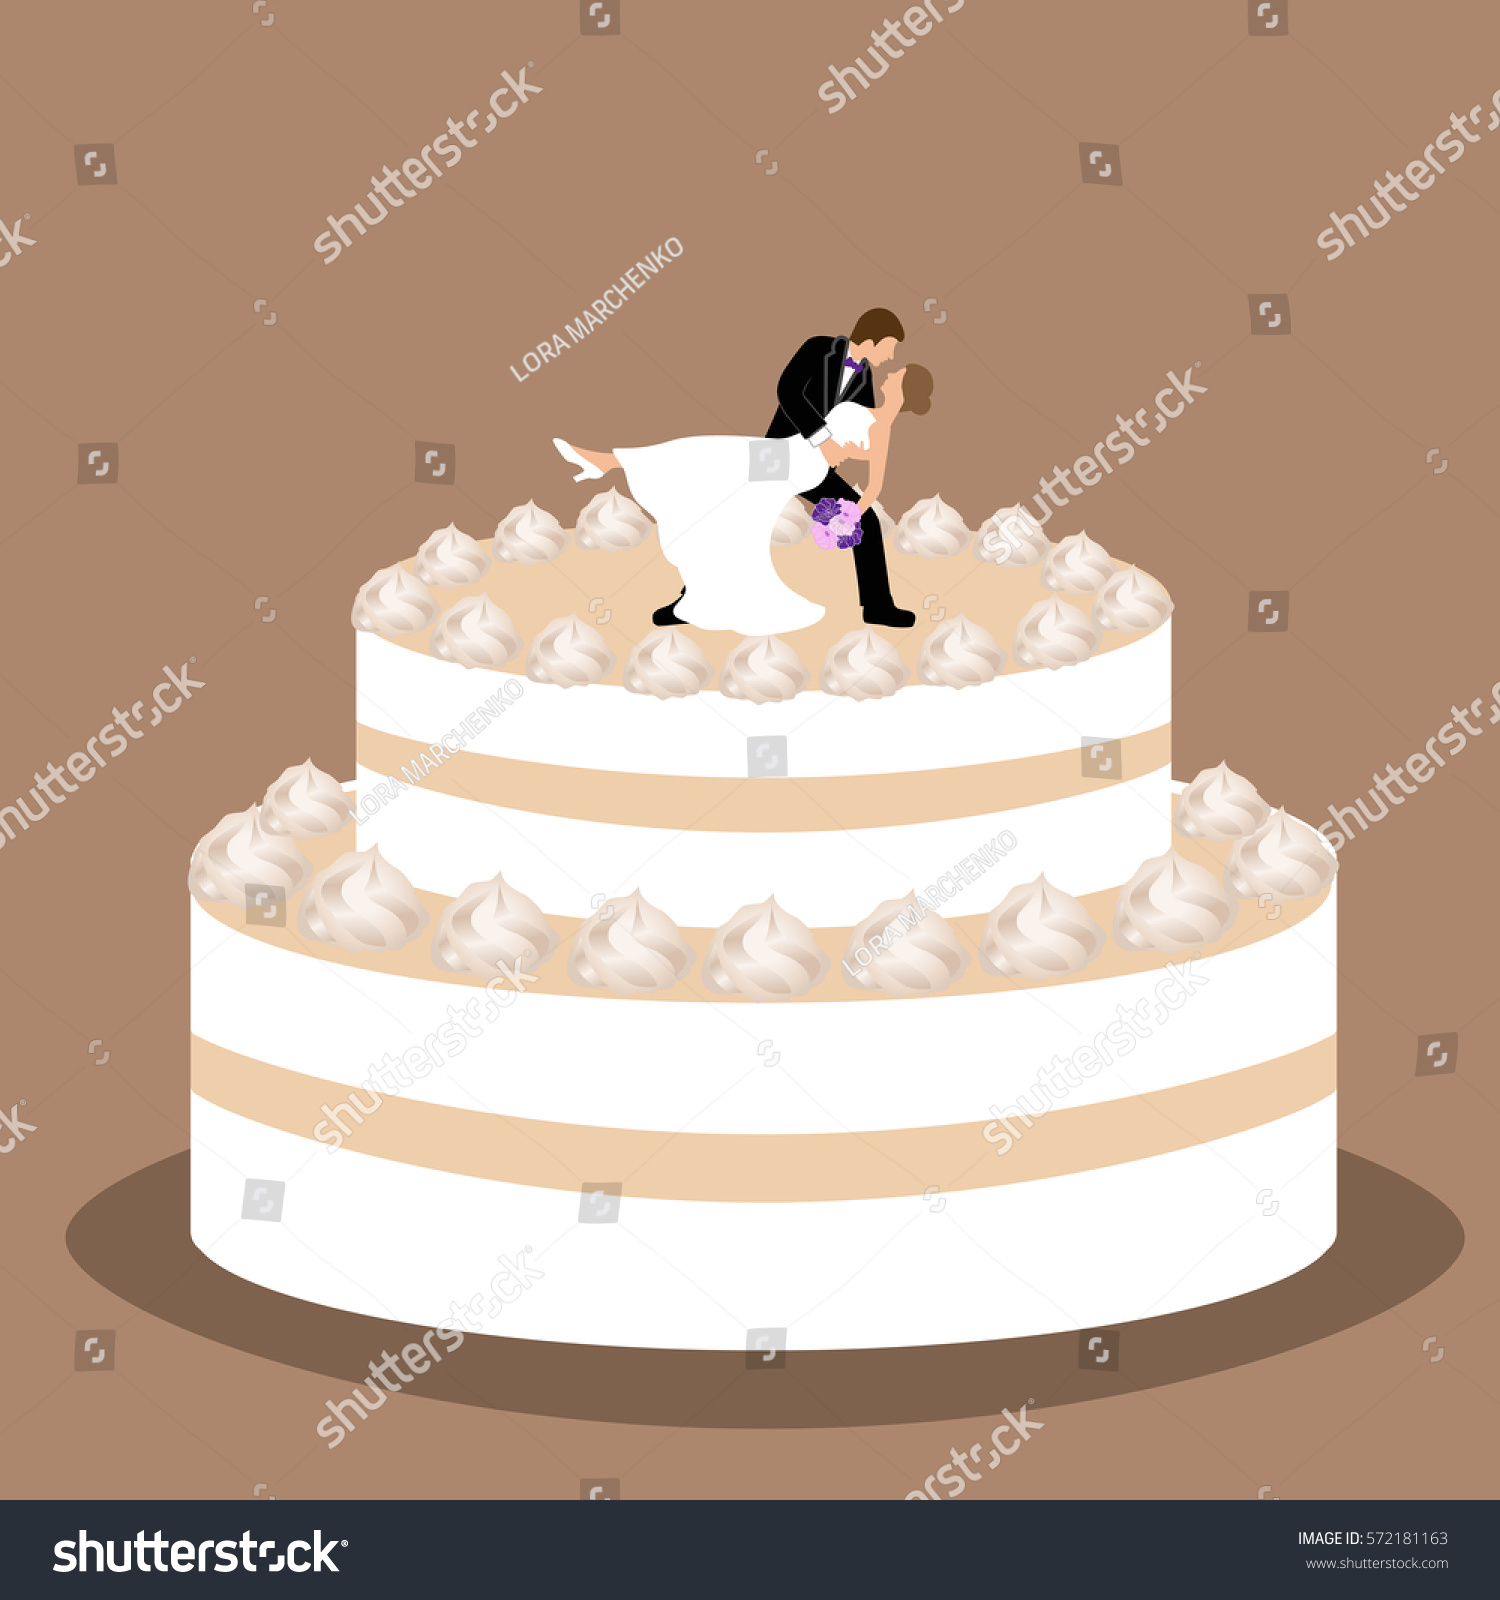 wedding cake vector wedding cake groom figurine cake stock vector 26758